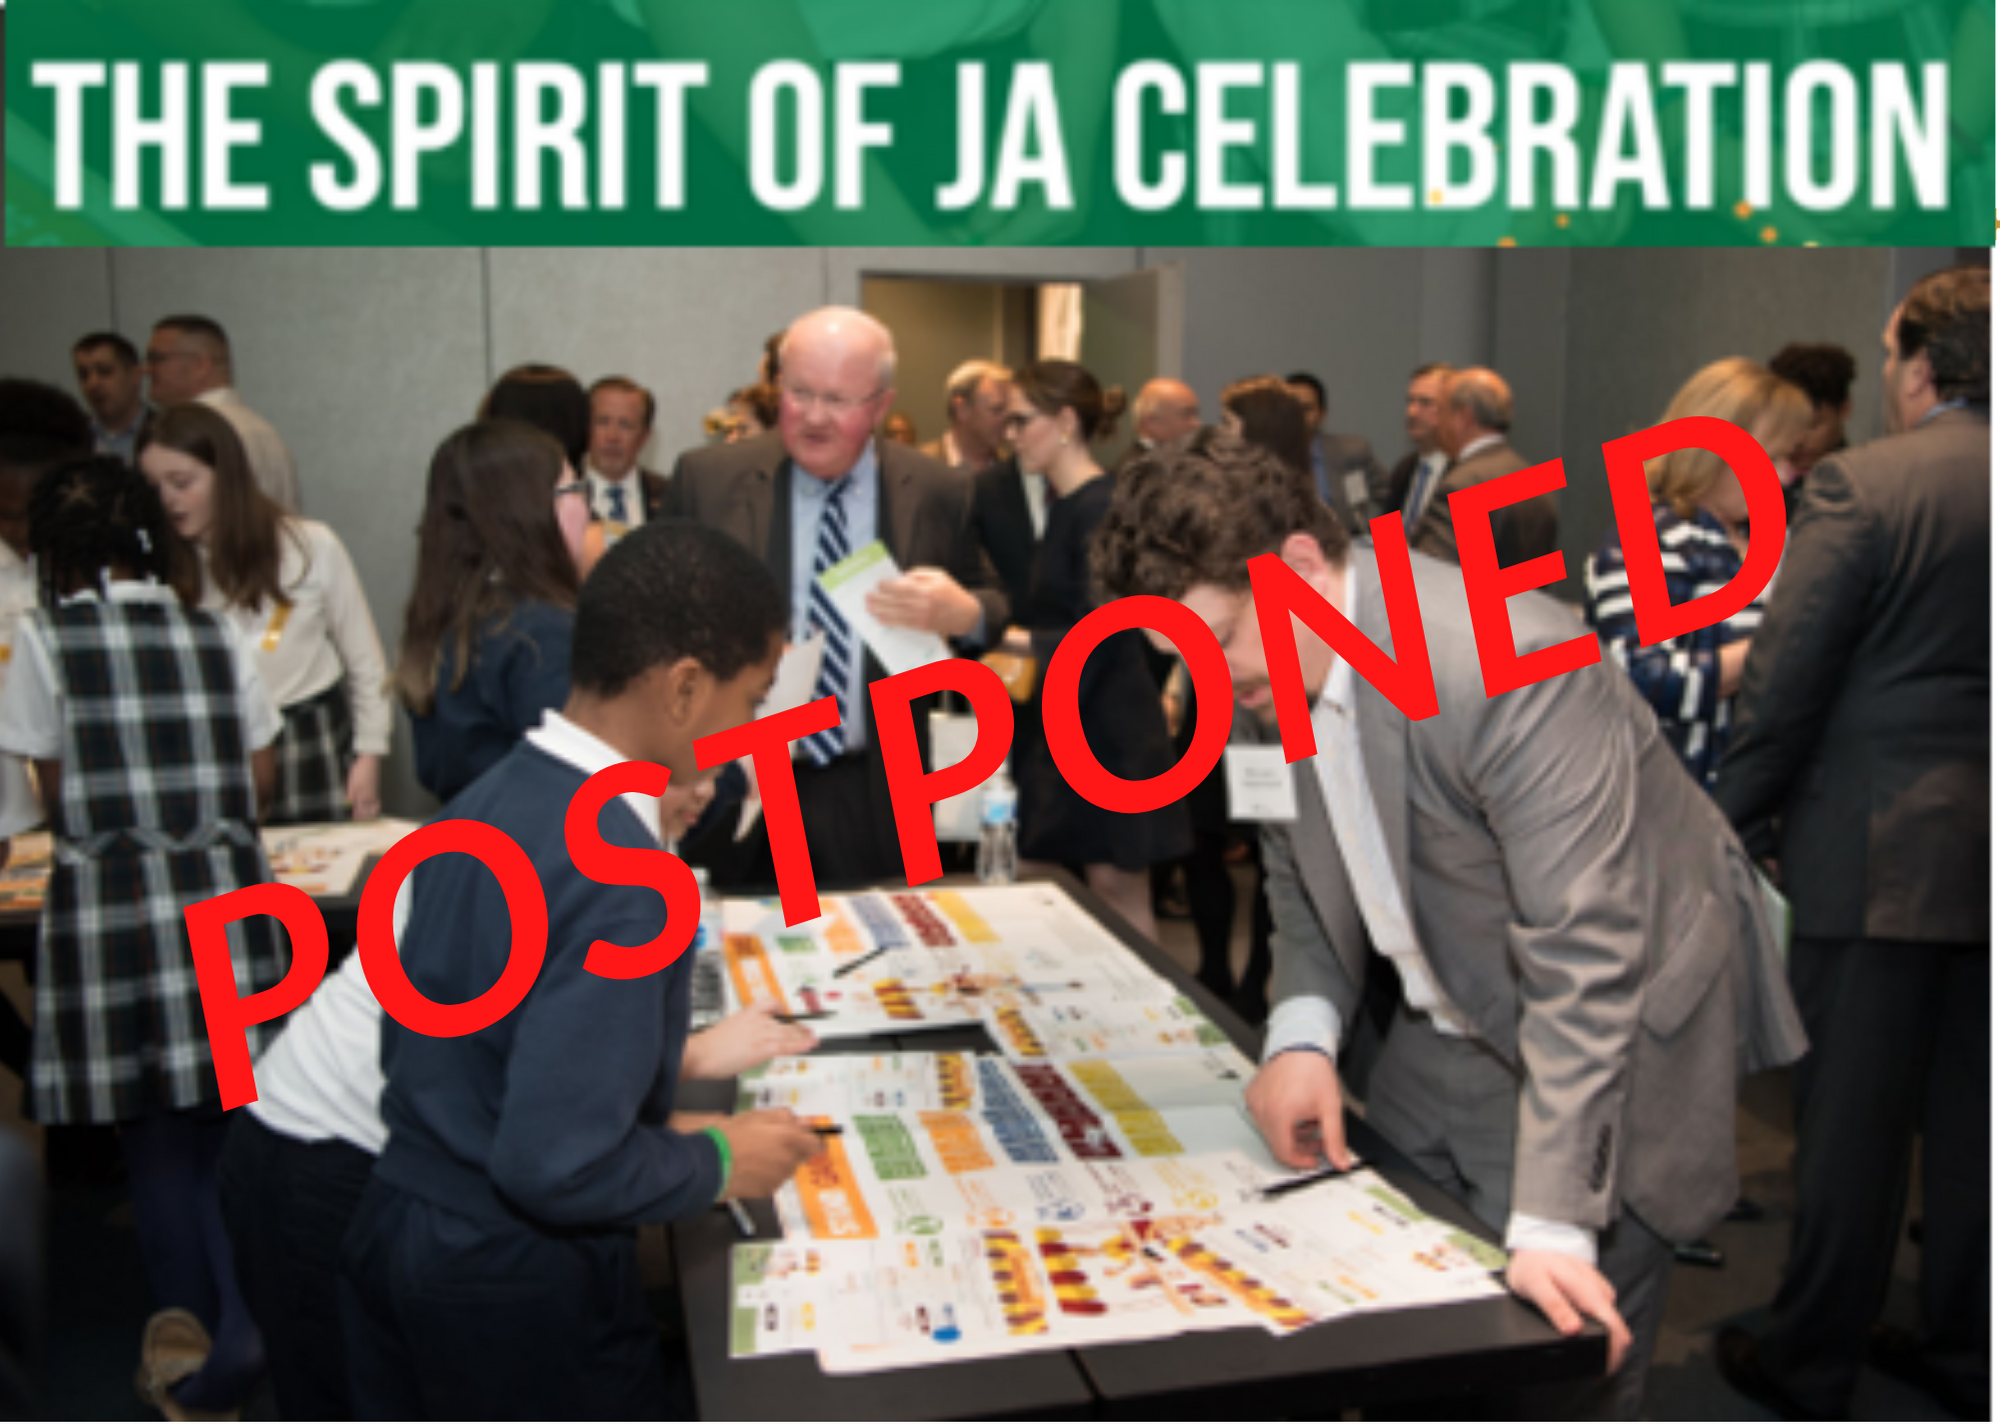 The Spirit of JA Celebration